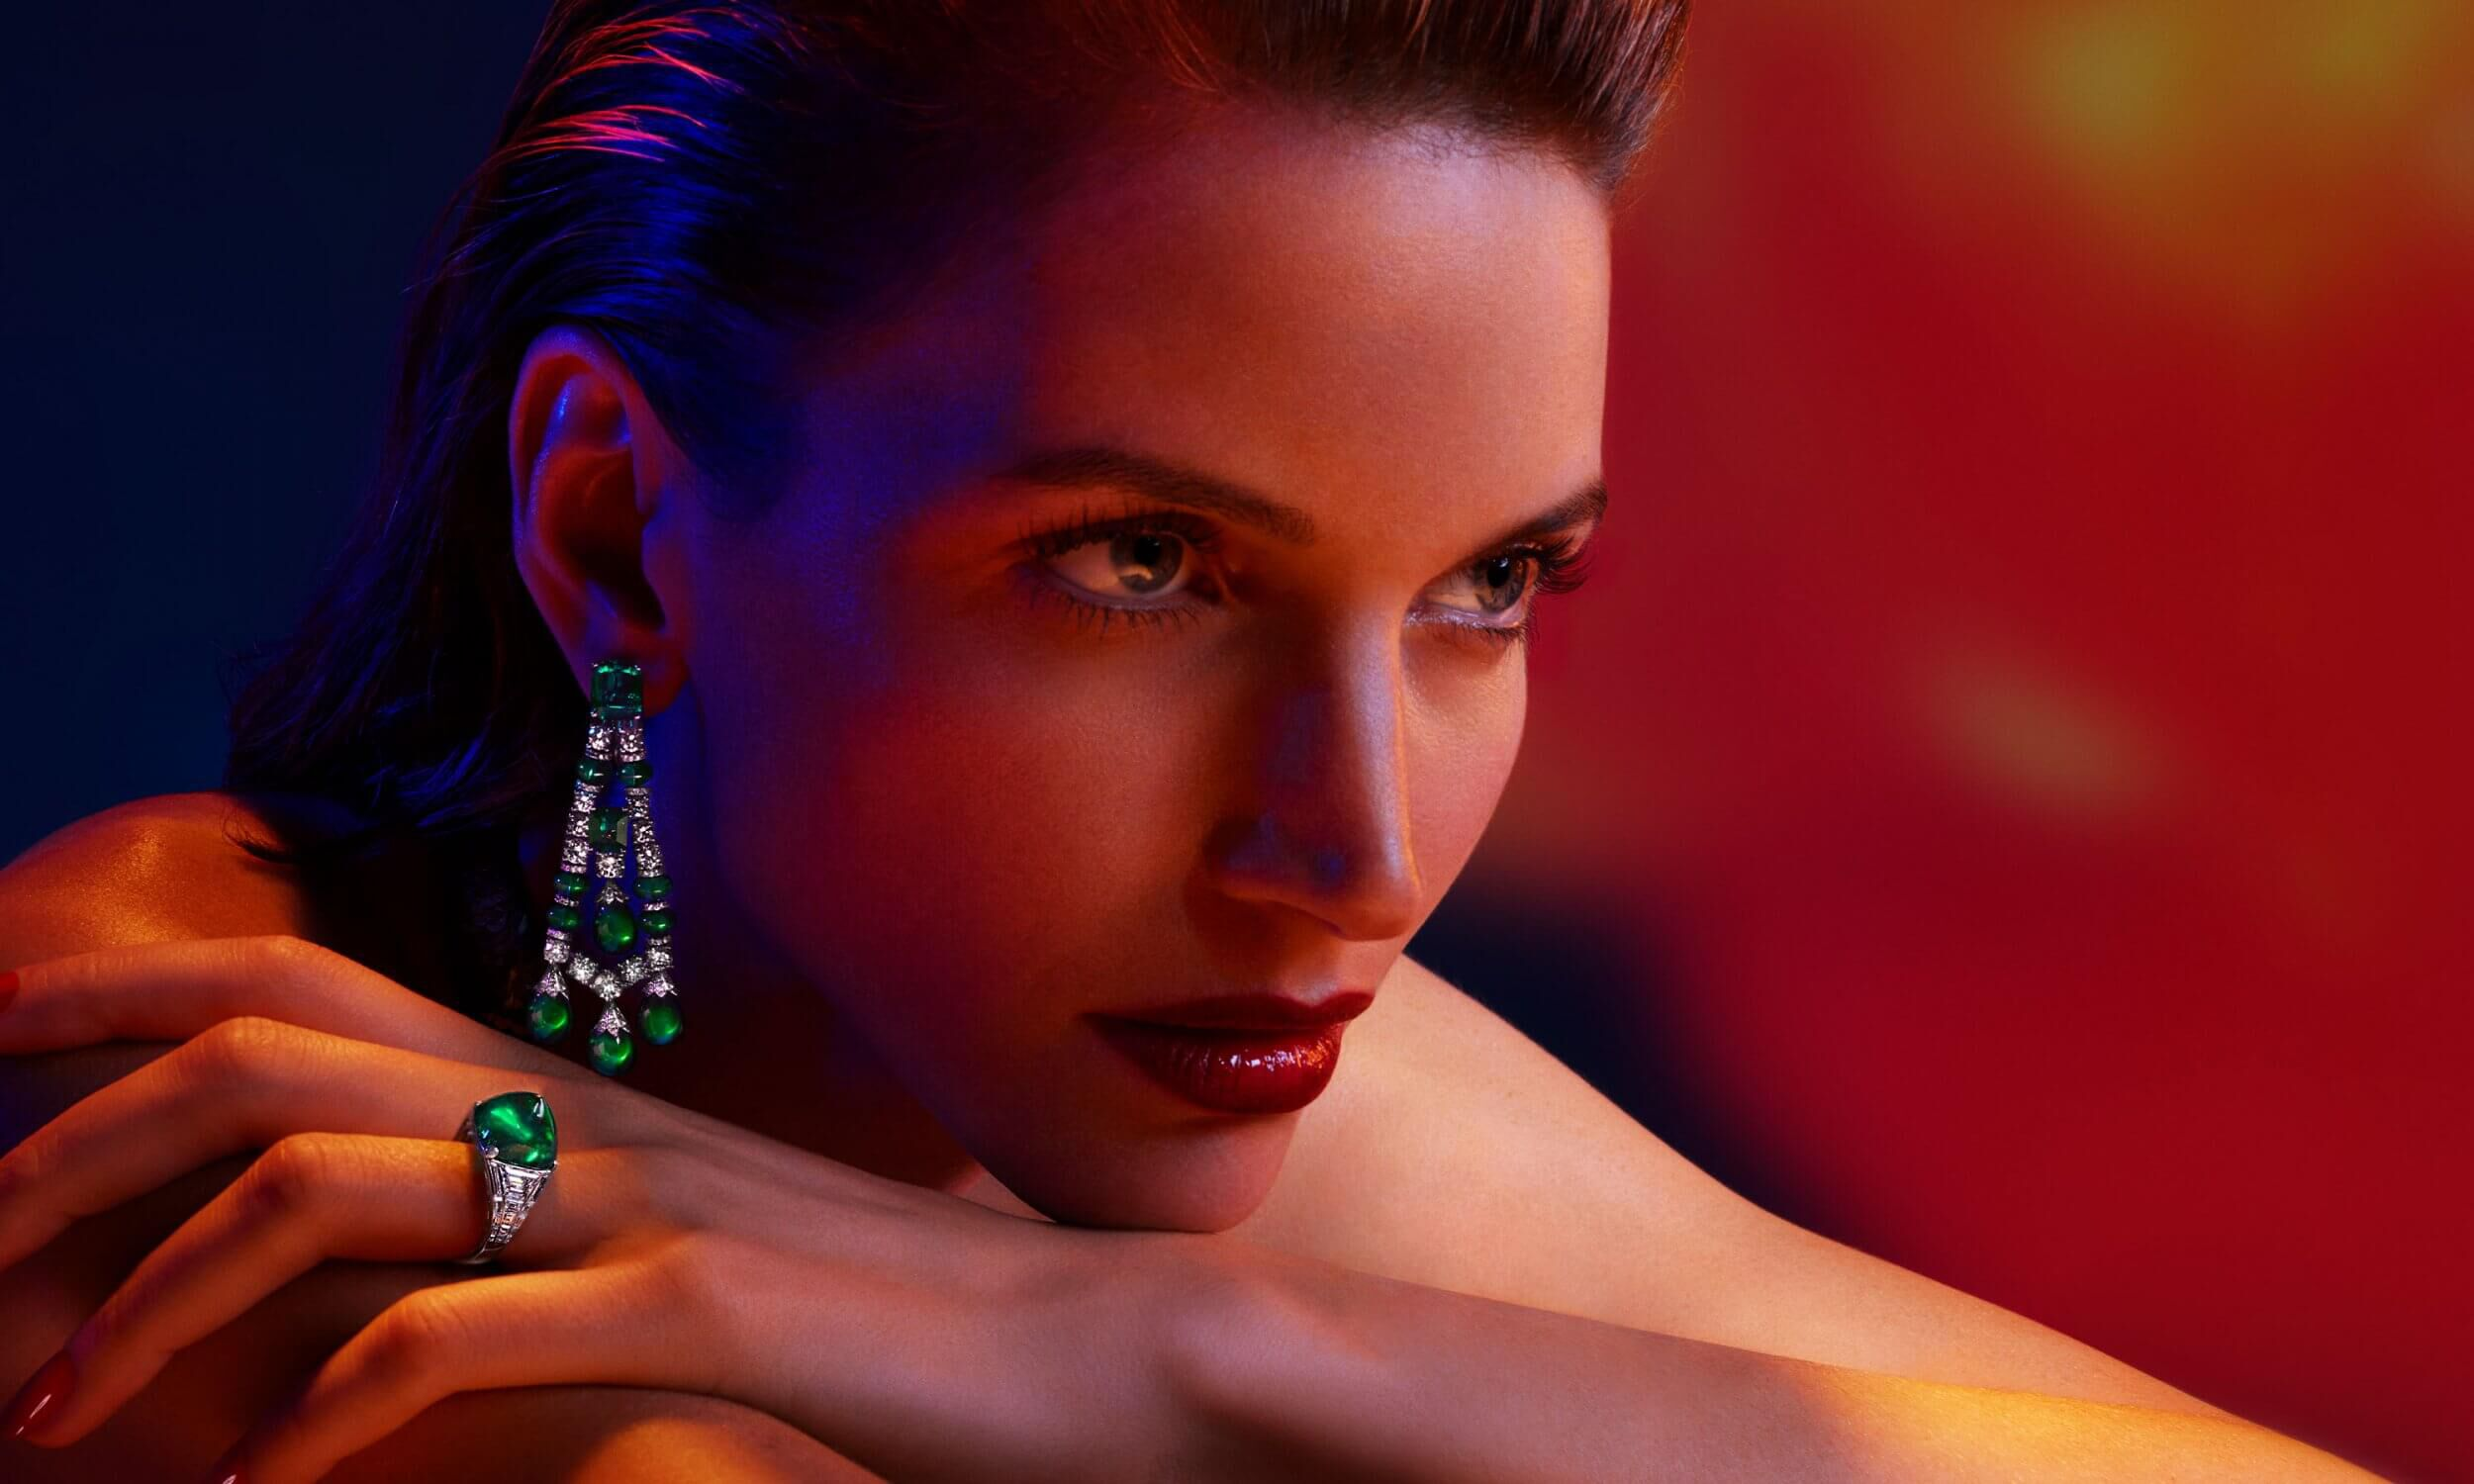 A model wears Graff high jewellery emerald and diamond earrings and am sugarloaf Colombian emerald ring.